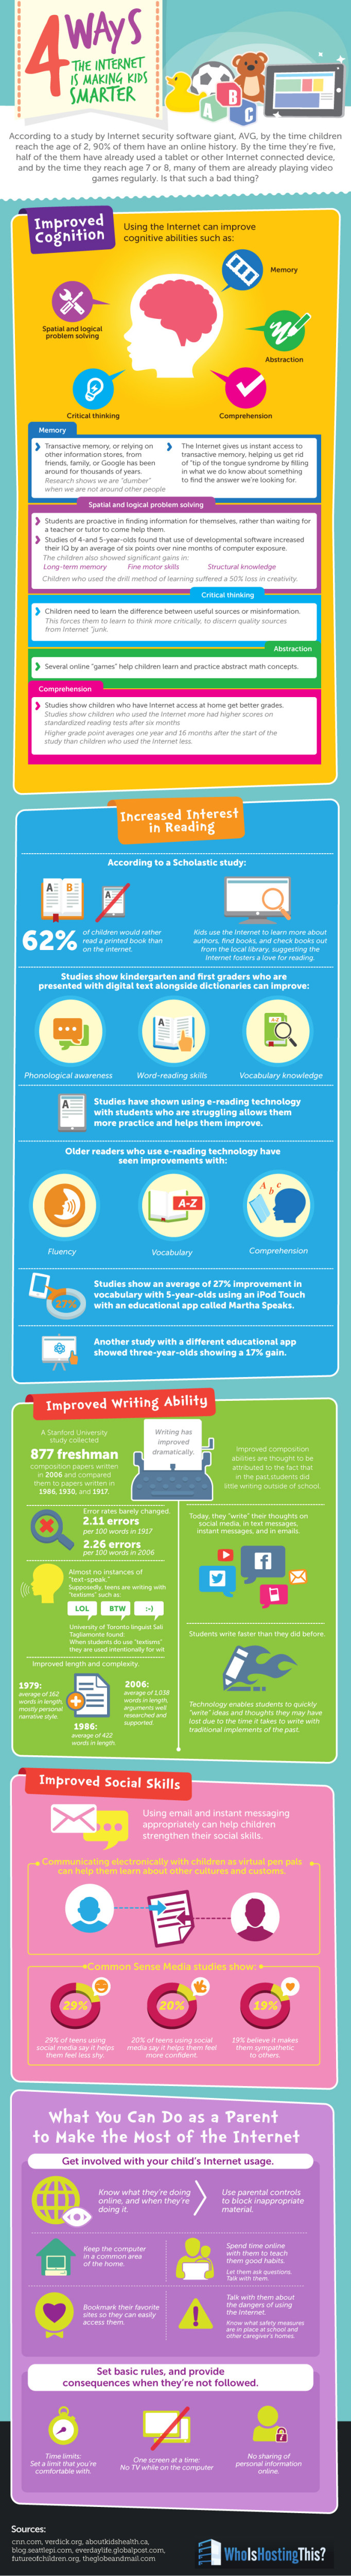 4 Ways the Internet is Making Kids Smarter Infographic